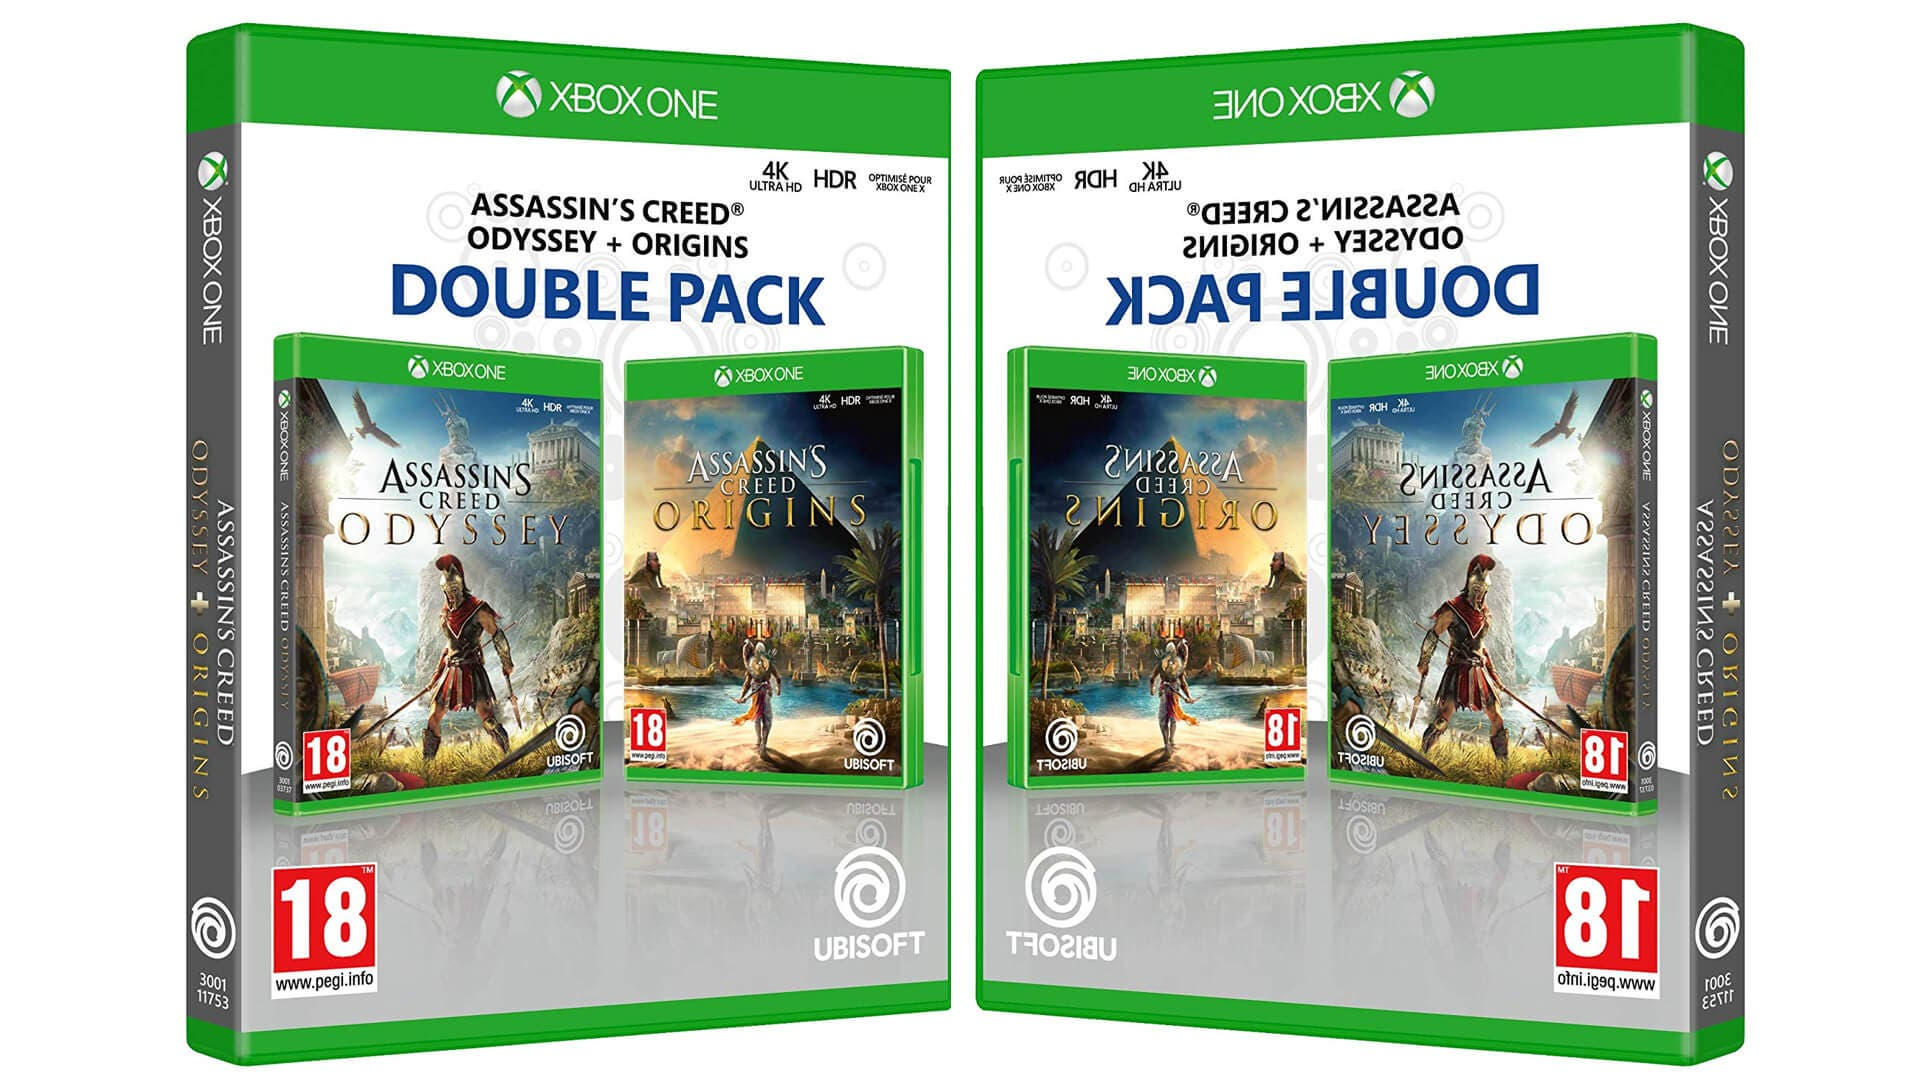 Gran oferta de Doble Pack Assassin's Creed Origins + Odyssey para Xbox 5